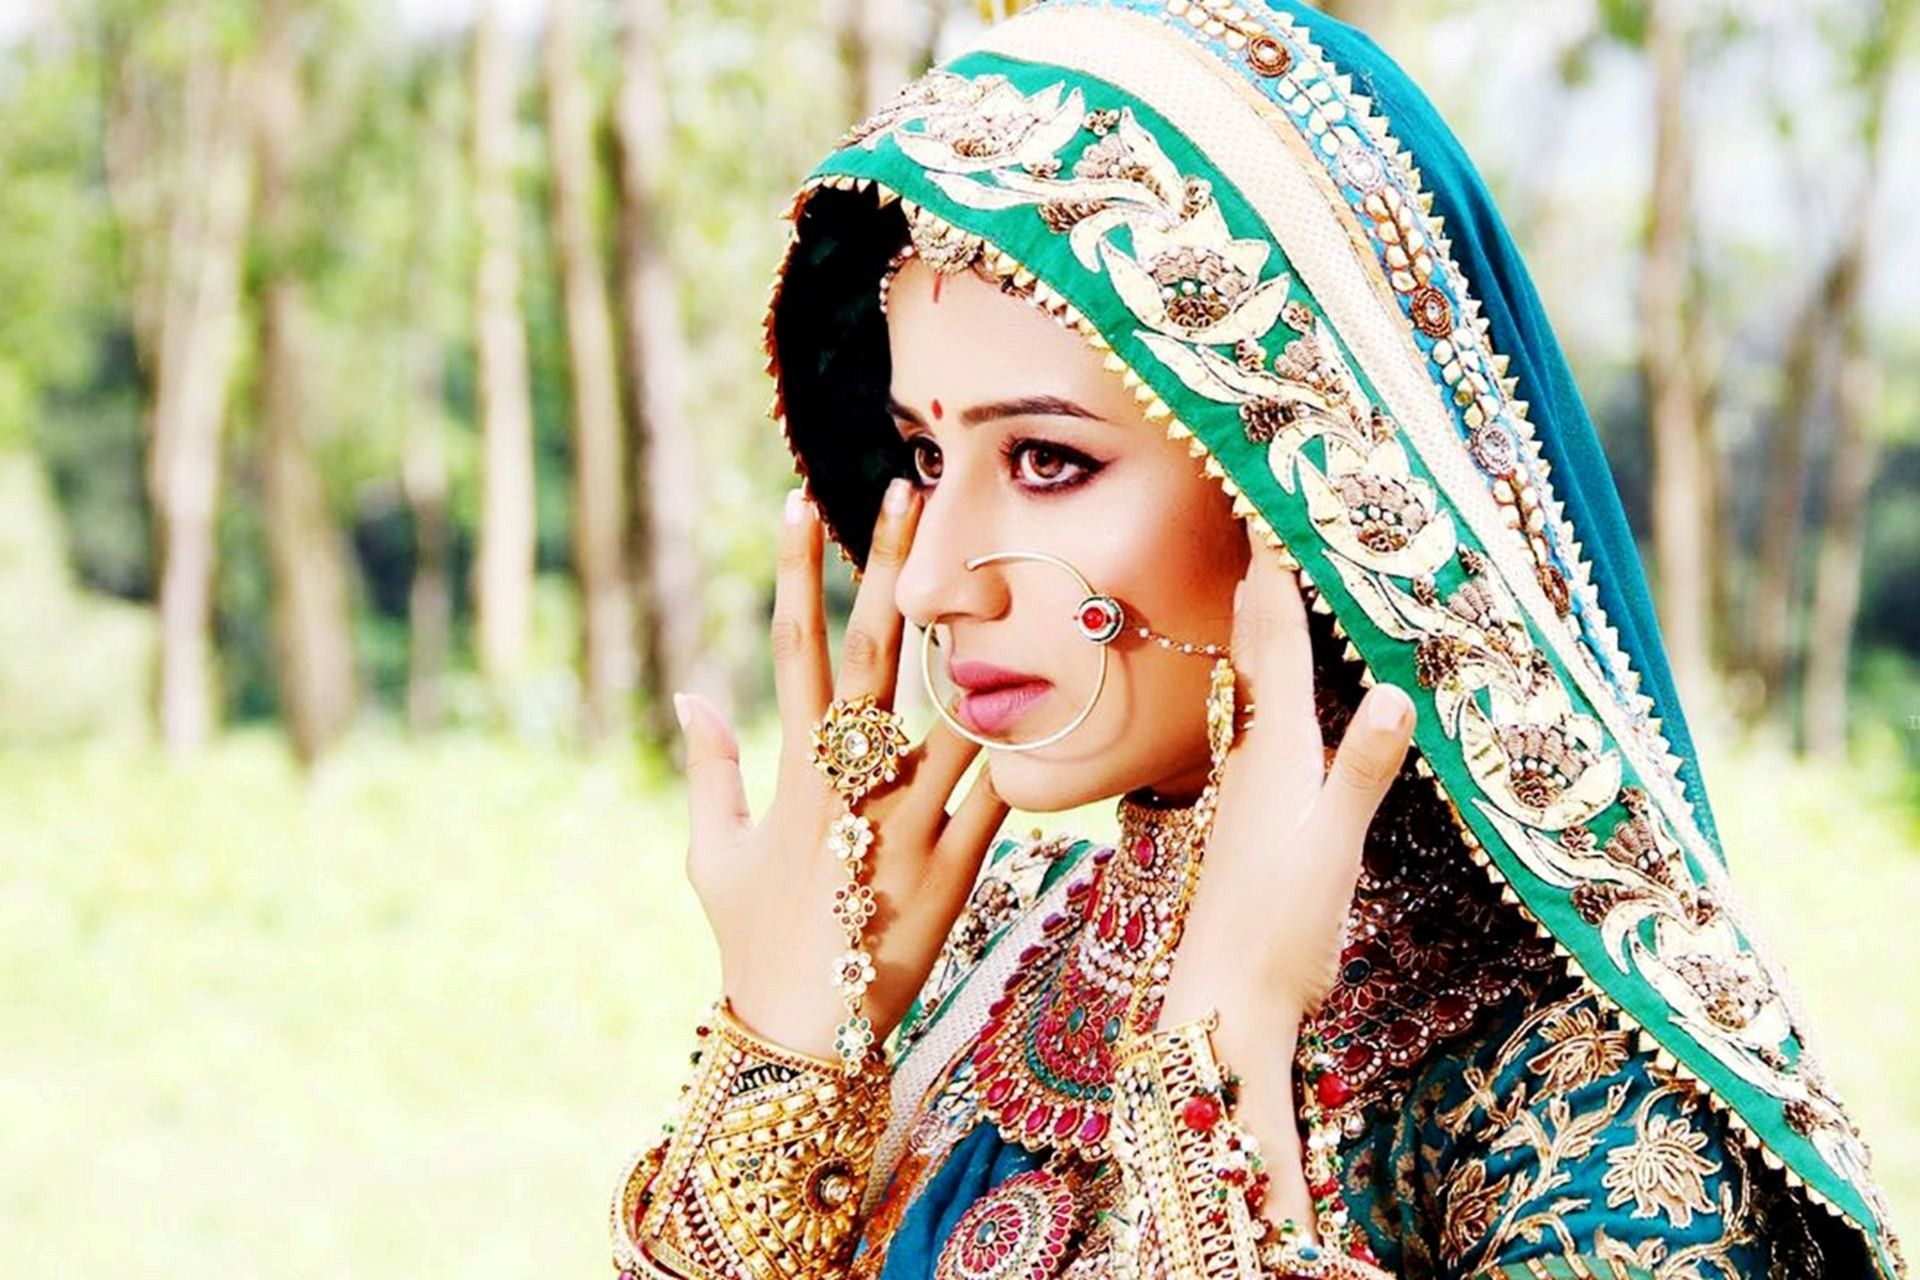 Hd wallpaper zee tv serial - Jodha Akbar Is An Indian Historical Drama That Airs On Zee Tv The Series Premiered